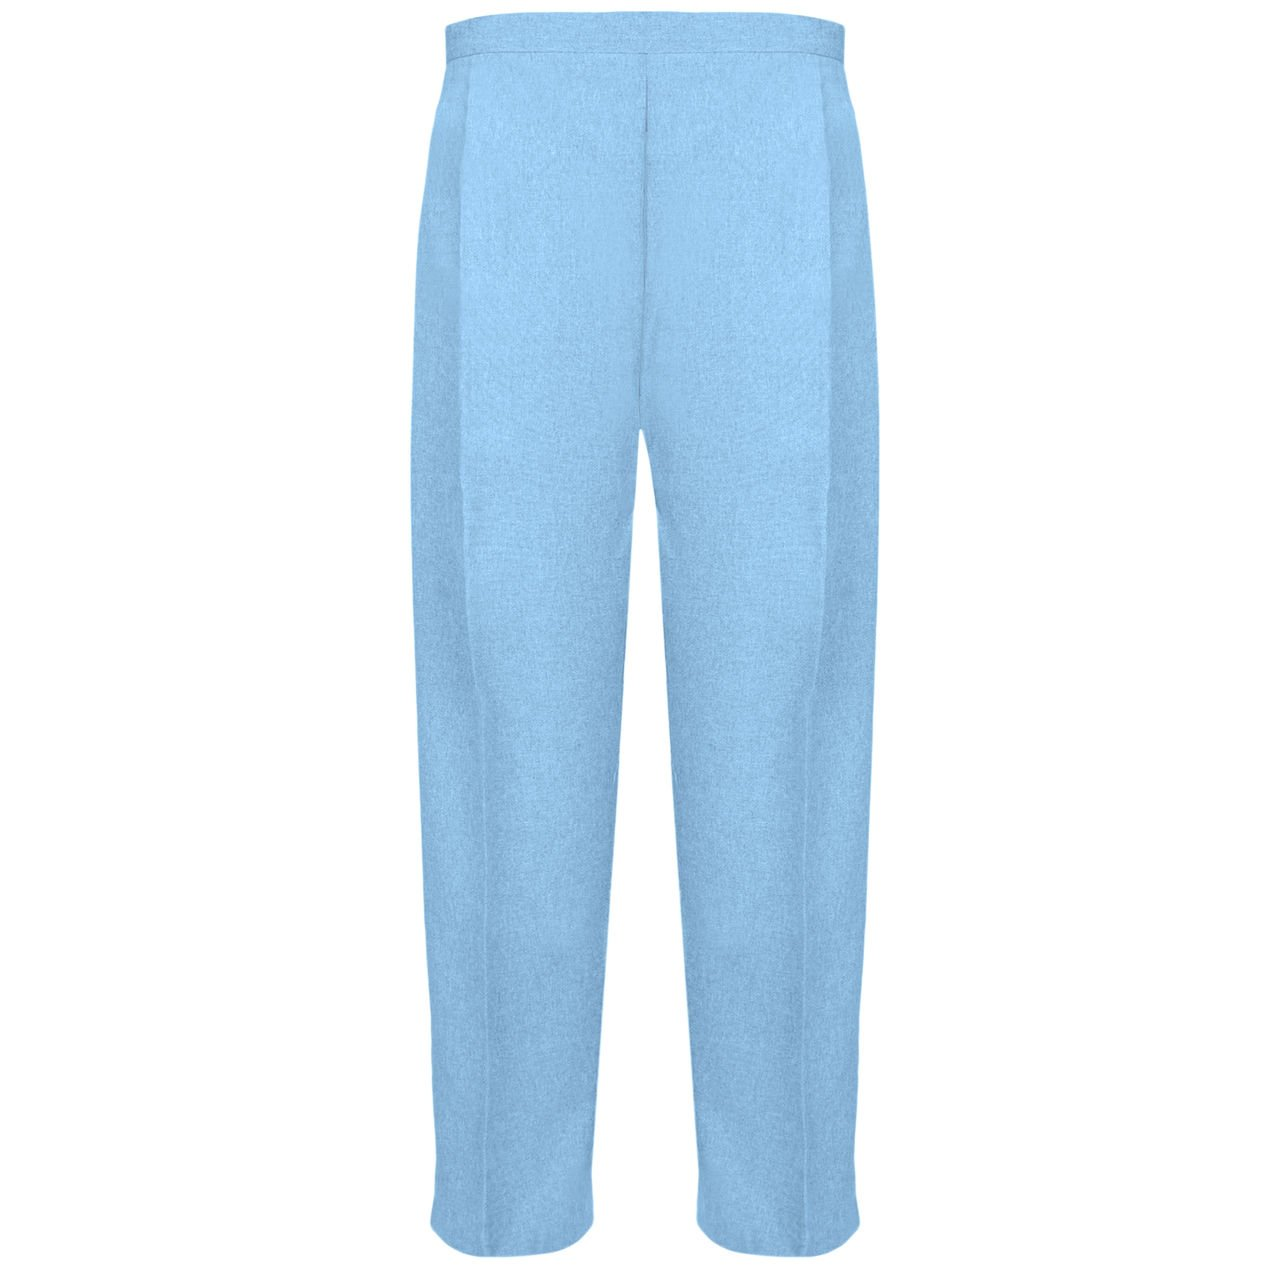 MyShoeStore Ladies Half Elasticated Trouser Womens Stretch Waist Casual Office Work Formal Trousers Pants With Pockets Plus Big Size 10-24